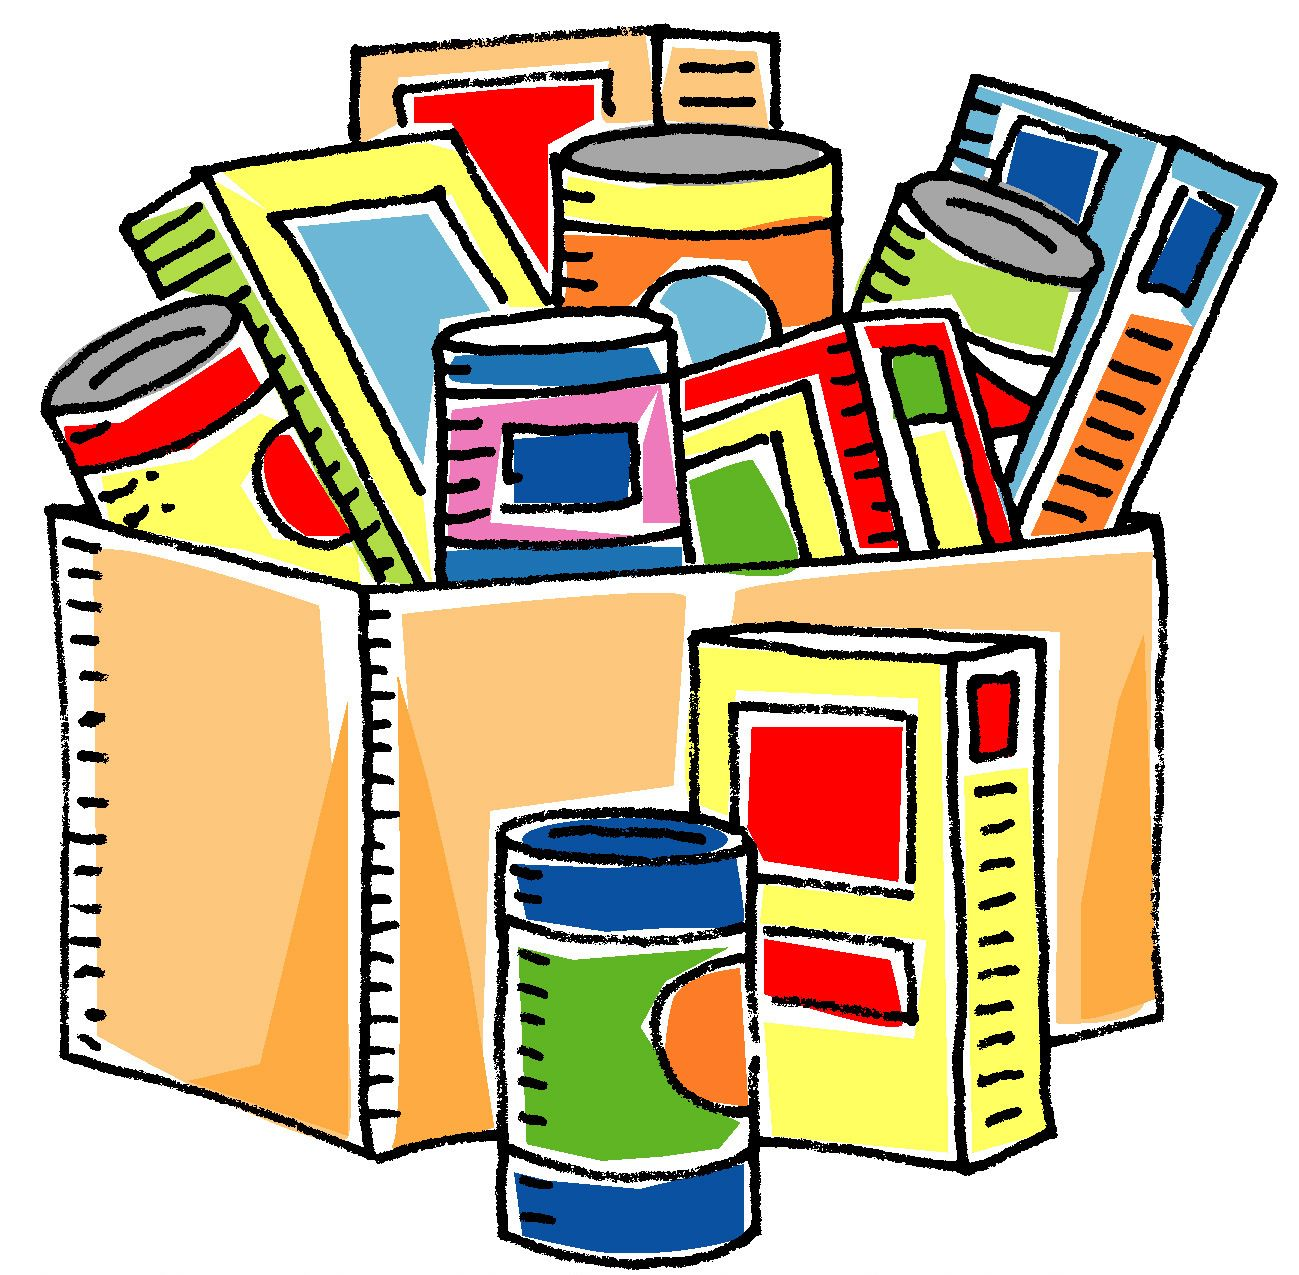 medium resolution of church food pantry clip art bing images